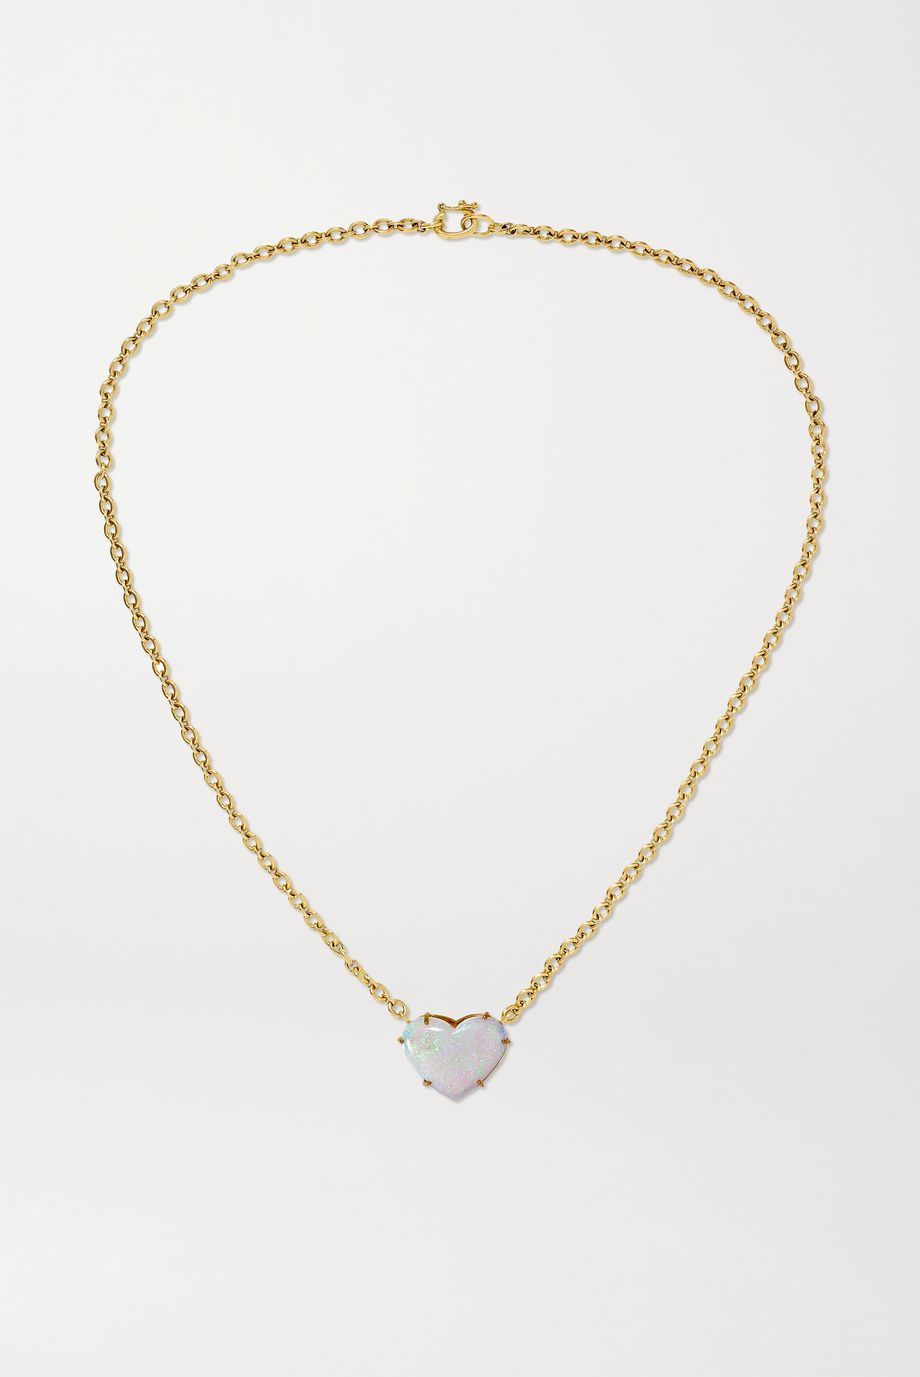 Irene Neuwirth Collier en or 18 carats et opale Love